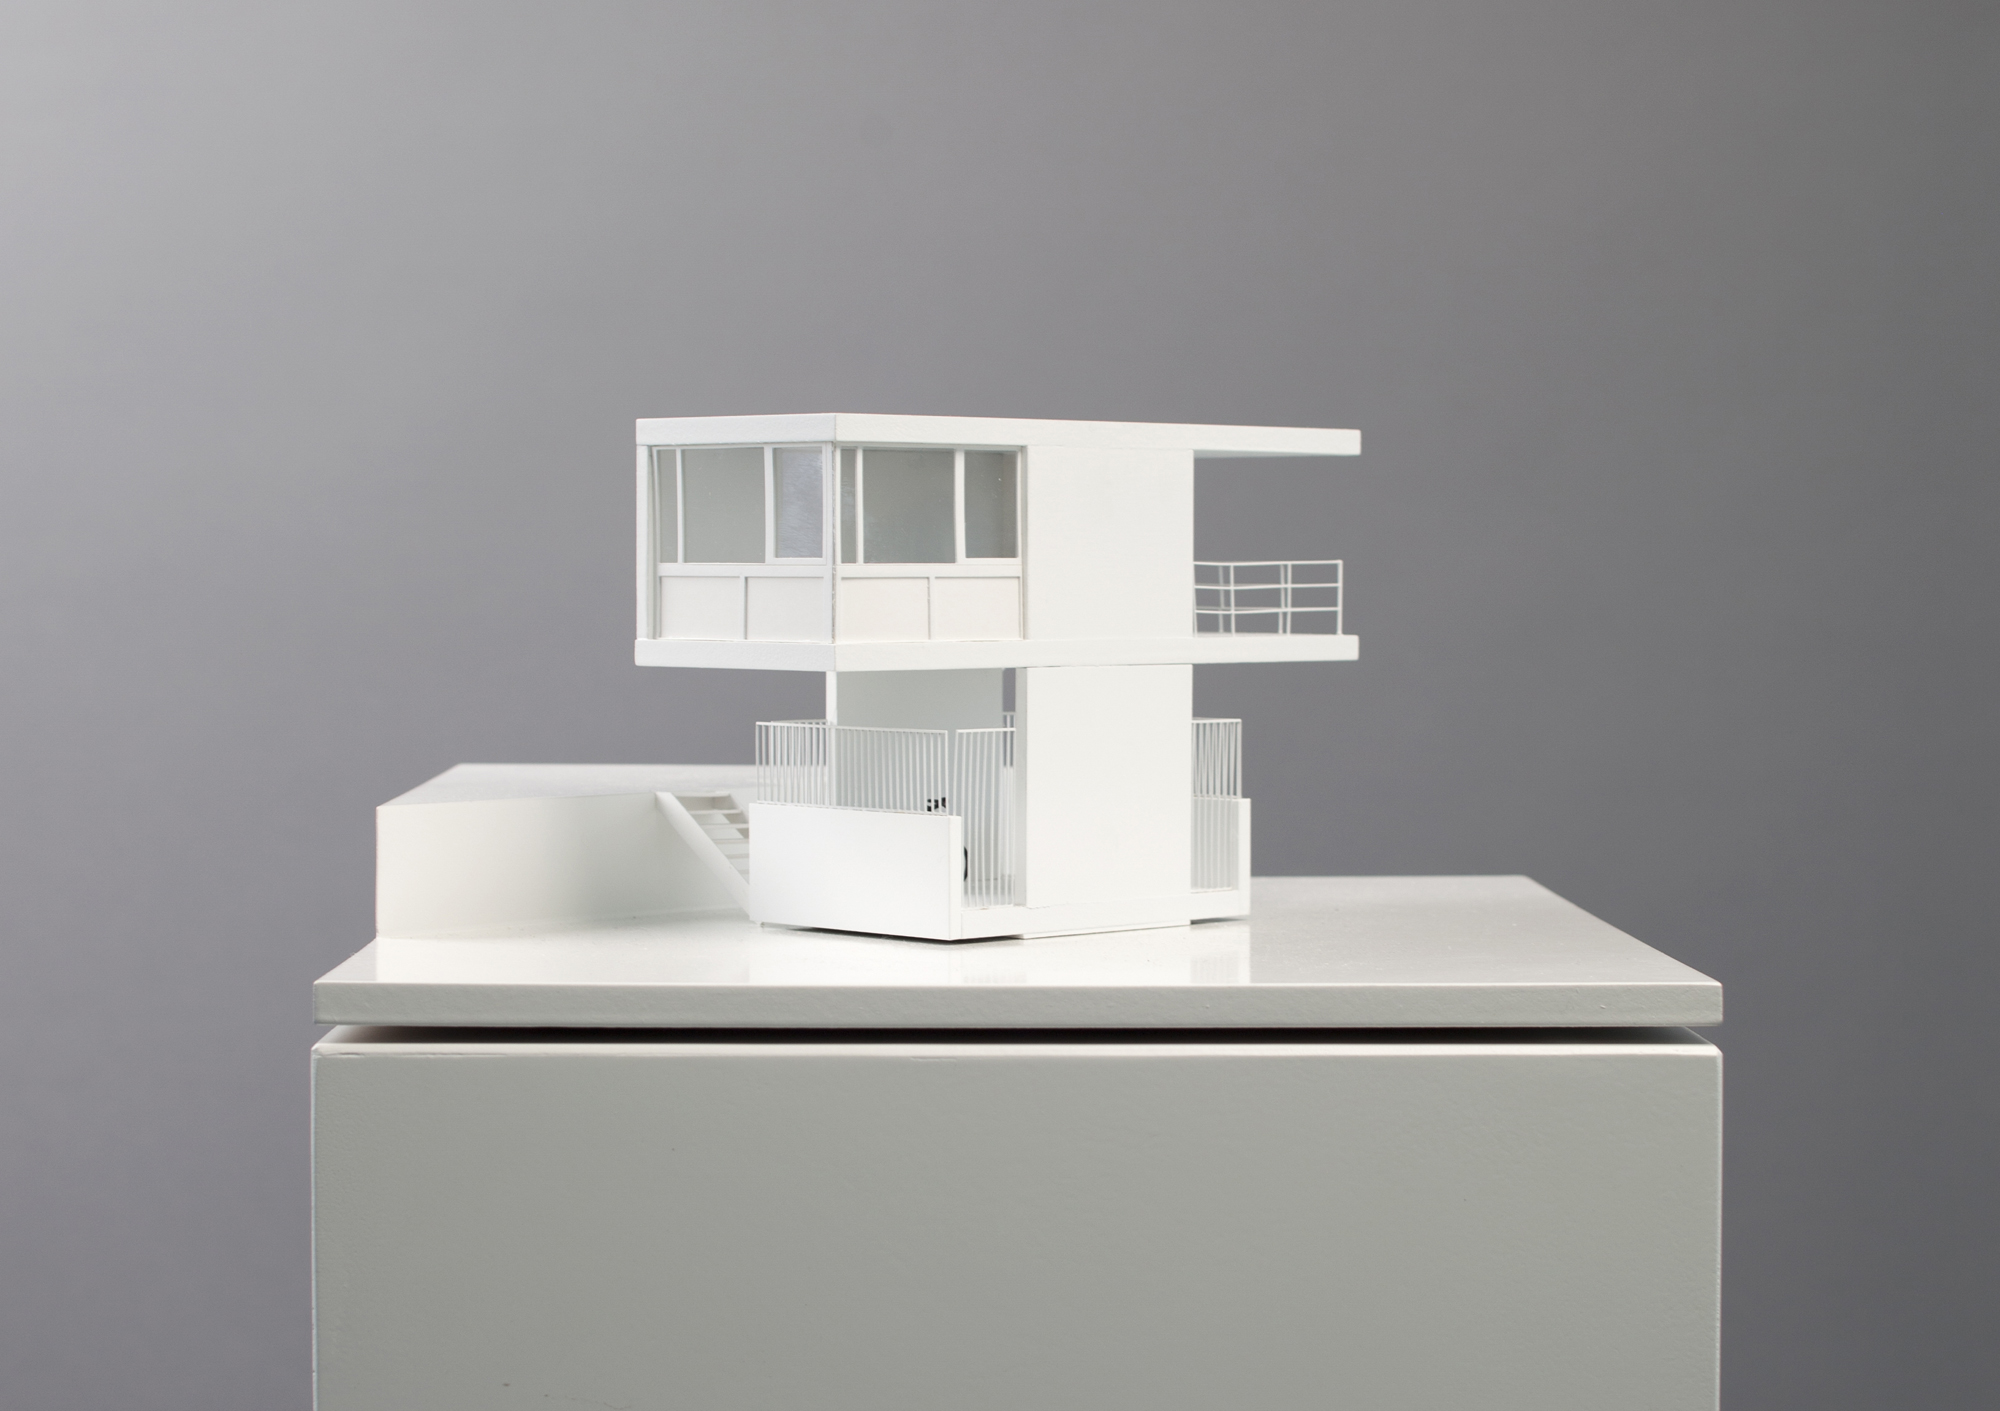 sweets_maquette_005.jpg